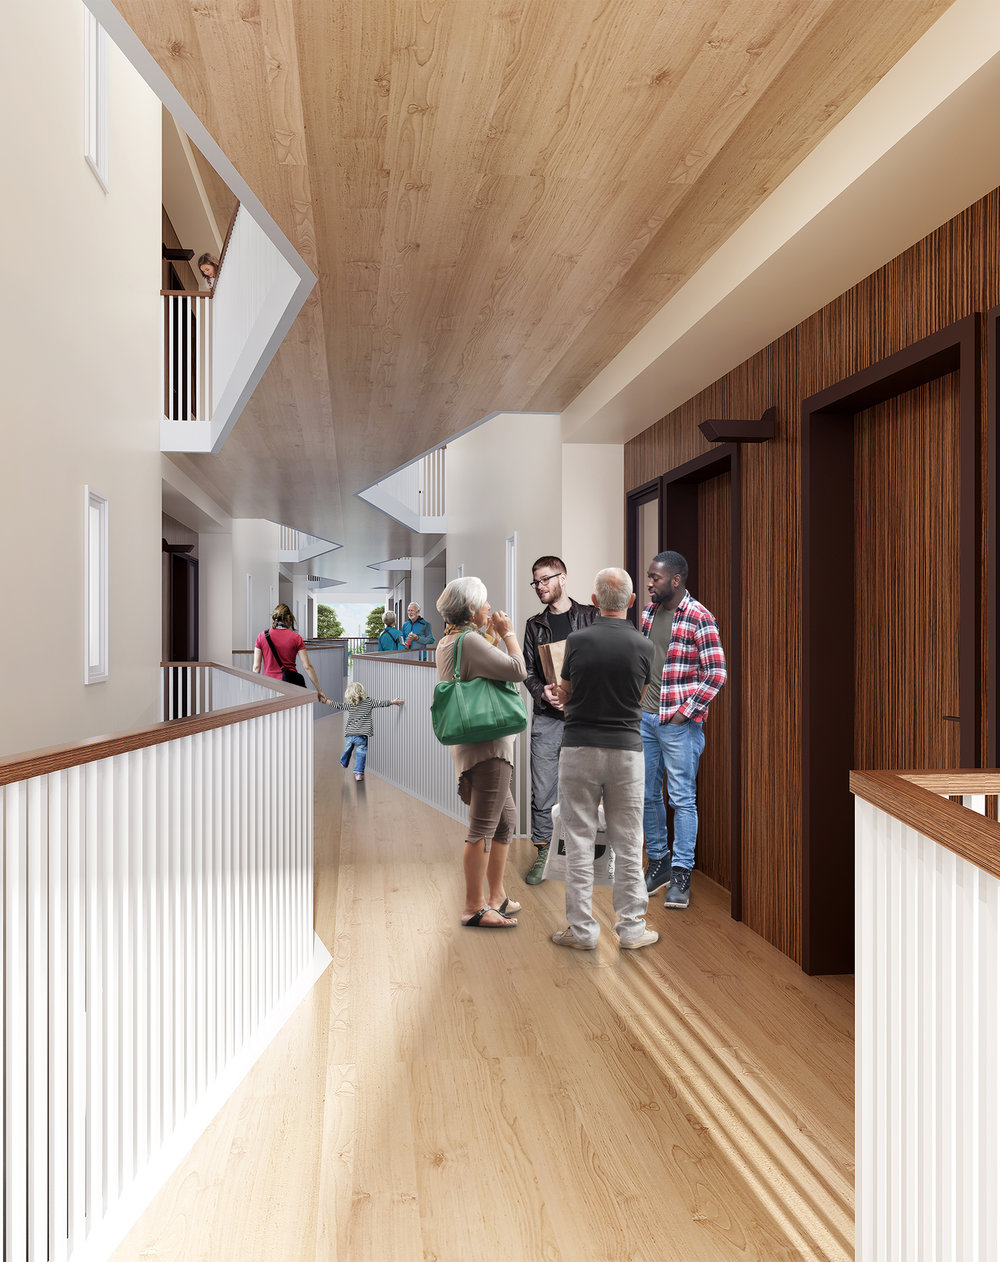 A five-story, light-filled  atrium  where you can greet and gather with your neighbors.